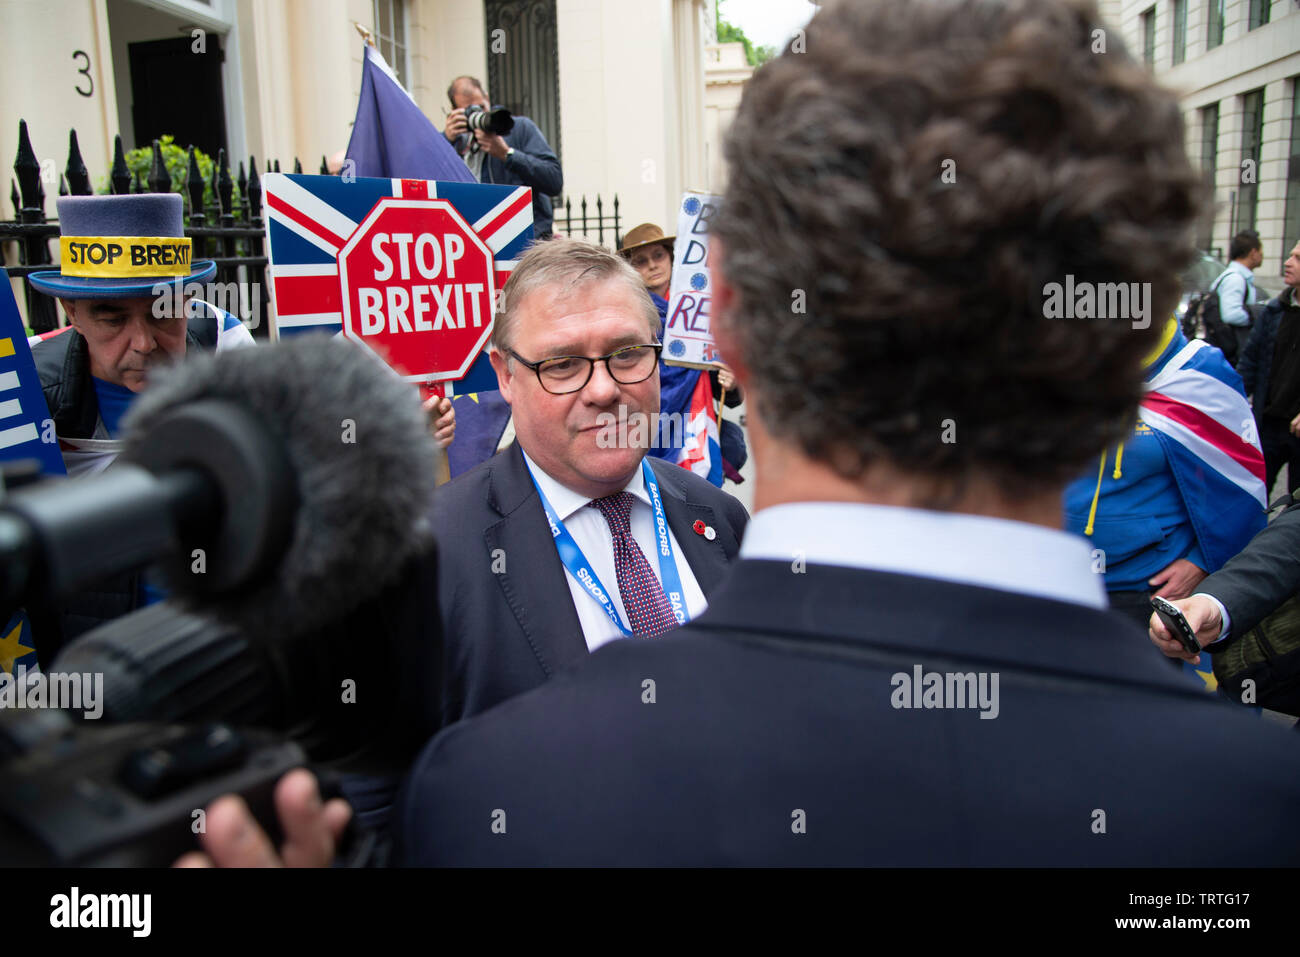 London, UK. 12th June, 2019. Mark Francois MP speaks to media outside an event held by  Boris Johnson to launch his bid to be leader of the Conservative and Unionist Party and Prime Minister. Credit: Claire Doherty/Alamy Live News Stock Photo